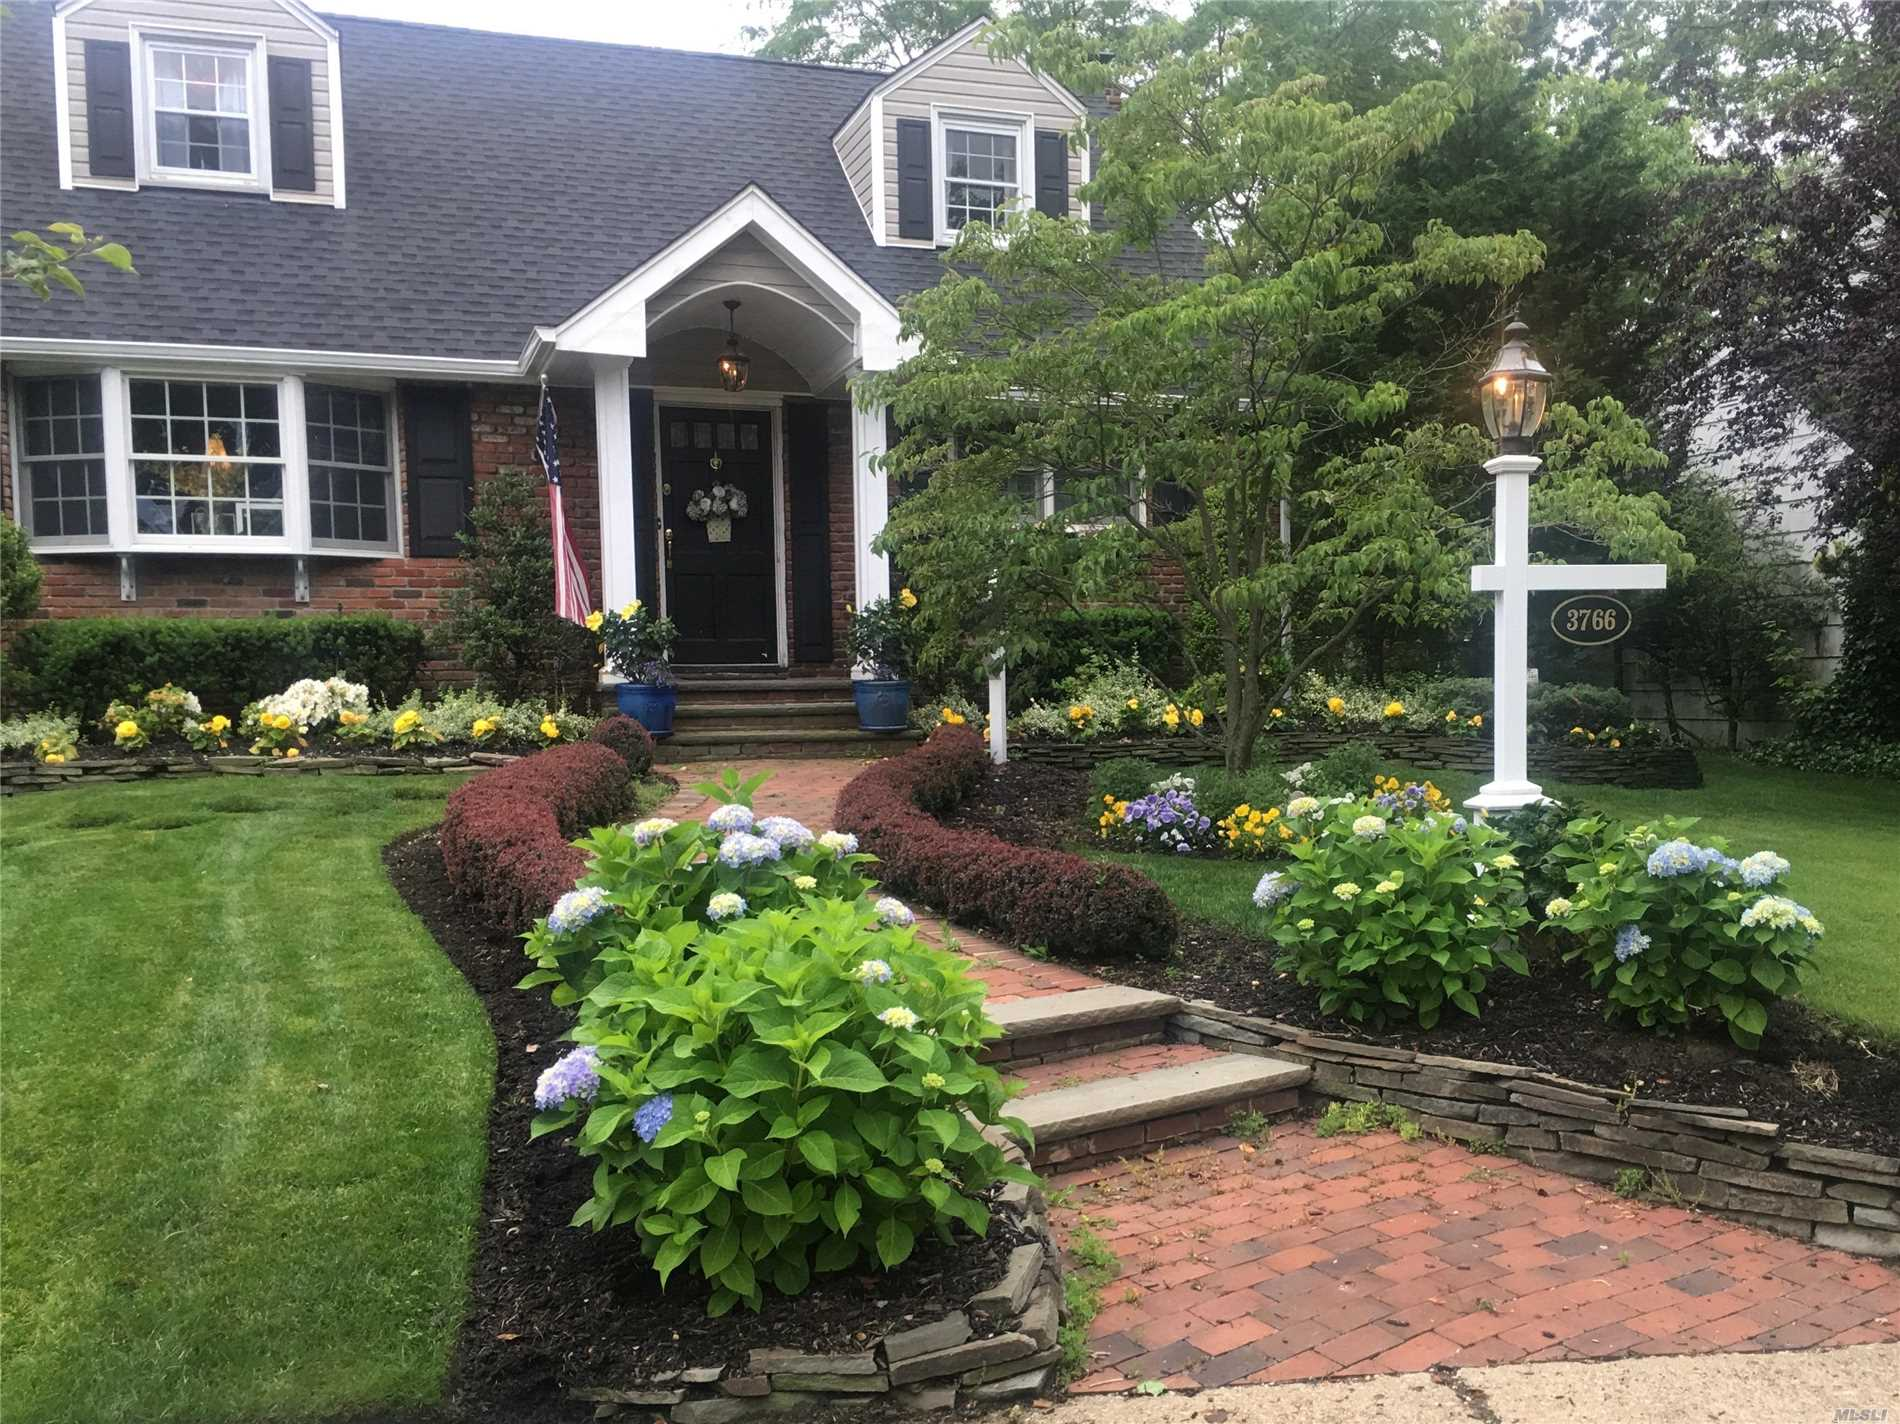 Welcome to this charming 4 bedroom home that offers a great room with wood burning fireplace & brazilian hardwood floors! This home features updated gourmet kitchen w/granite counters & SS appliances, new carrara marble bath, second floor new bath, andersen windows, gas boiler, brand new architectural roof, 150 Amp service, garage attic w/pull down stairs, deck off great room to lovely yard with 6 zone sprinkler system! All this & more in Seaford Manor with Seaford schools!